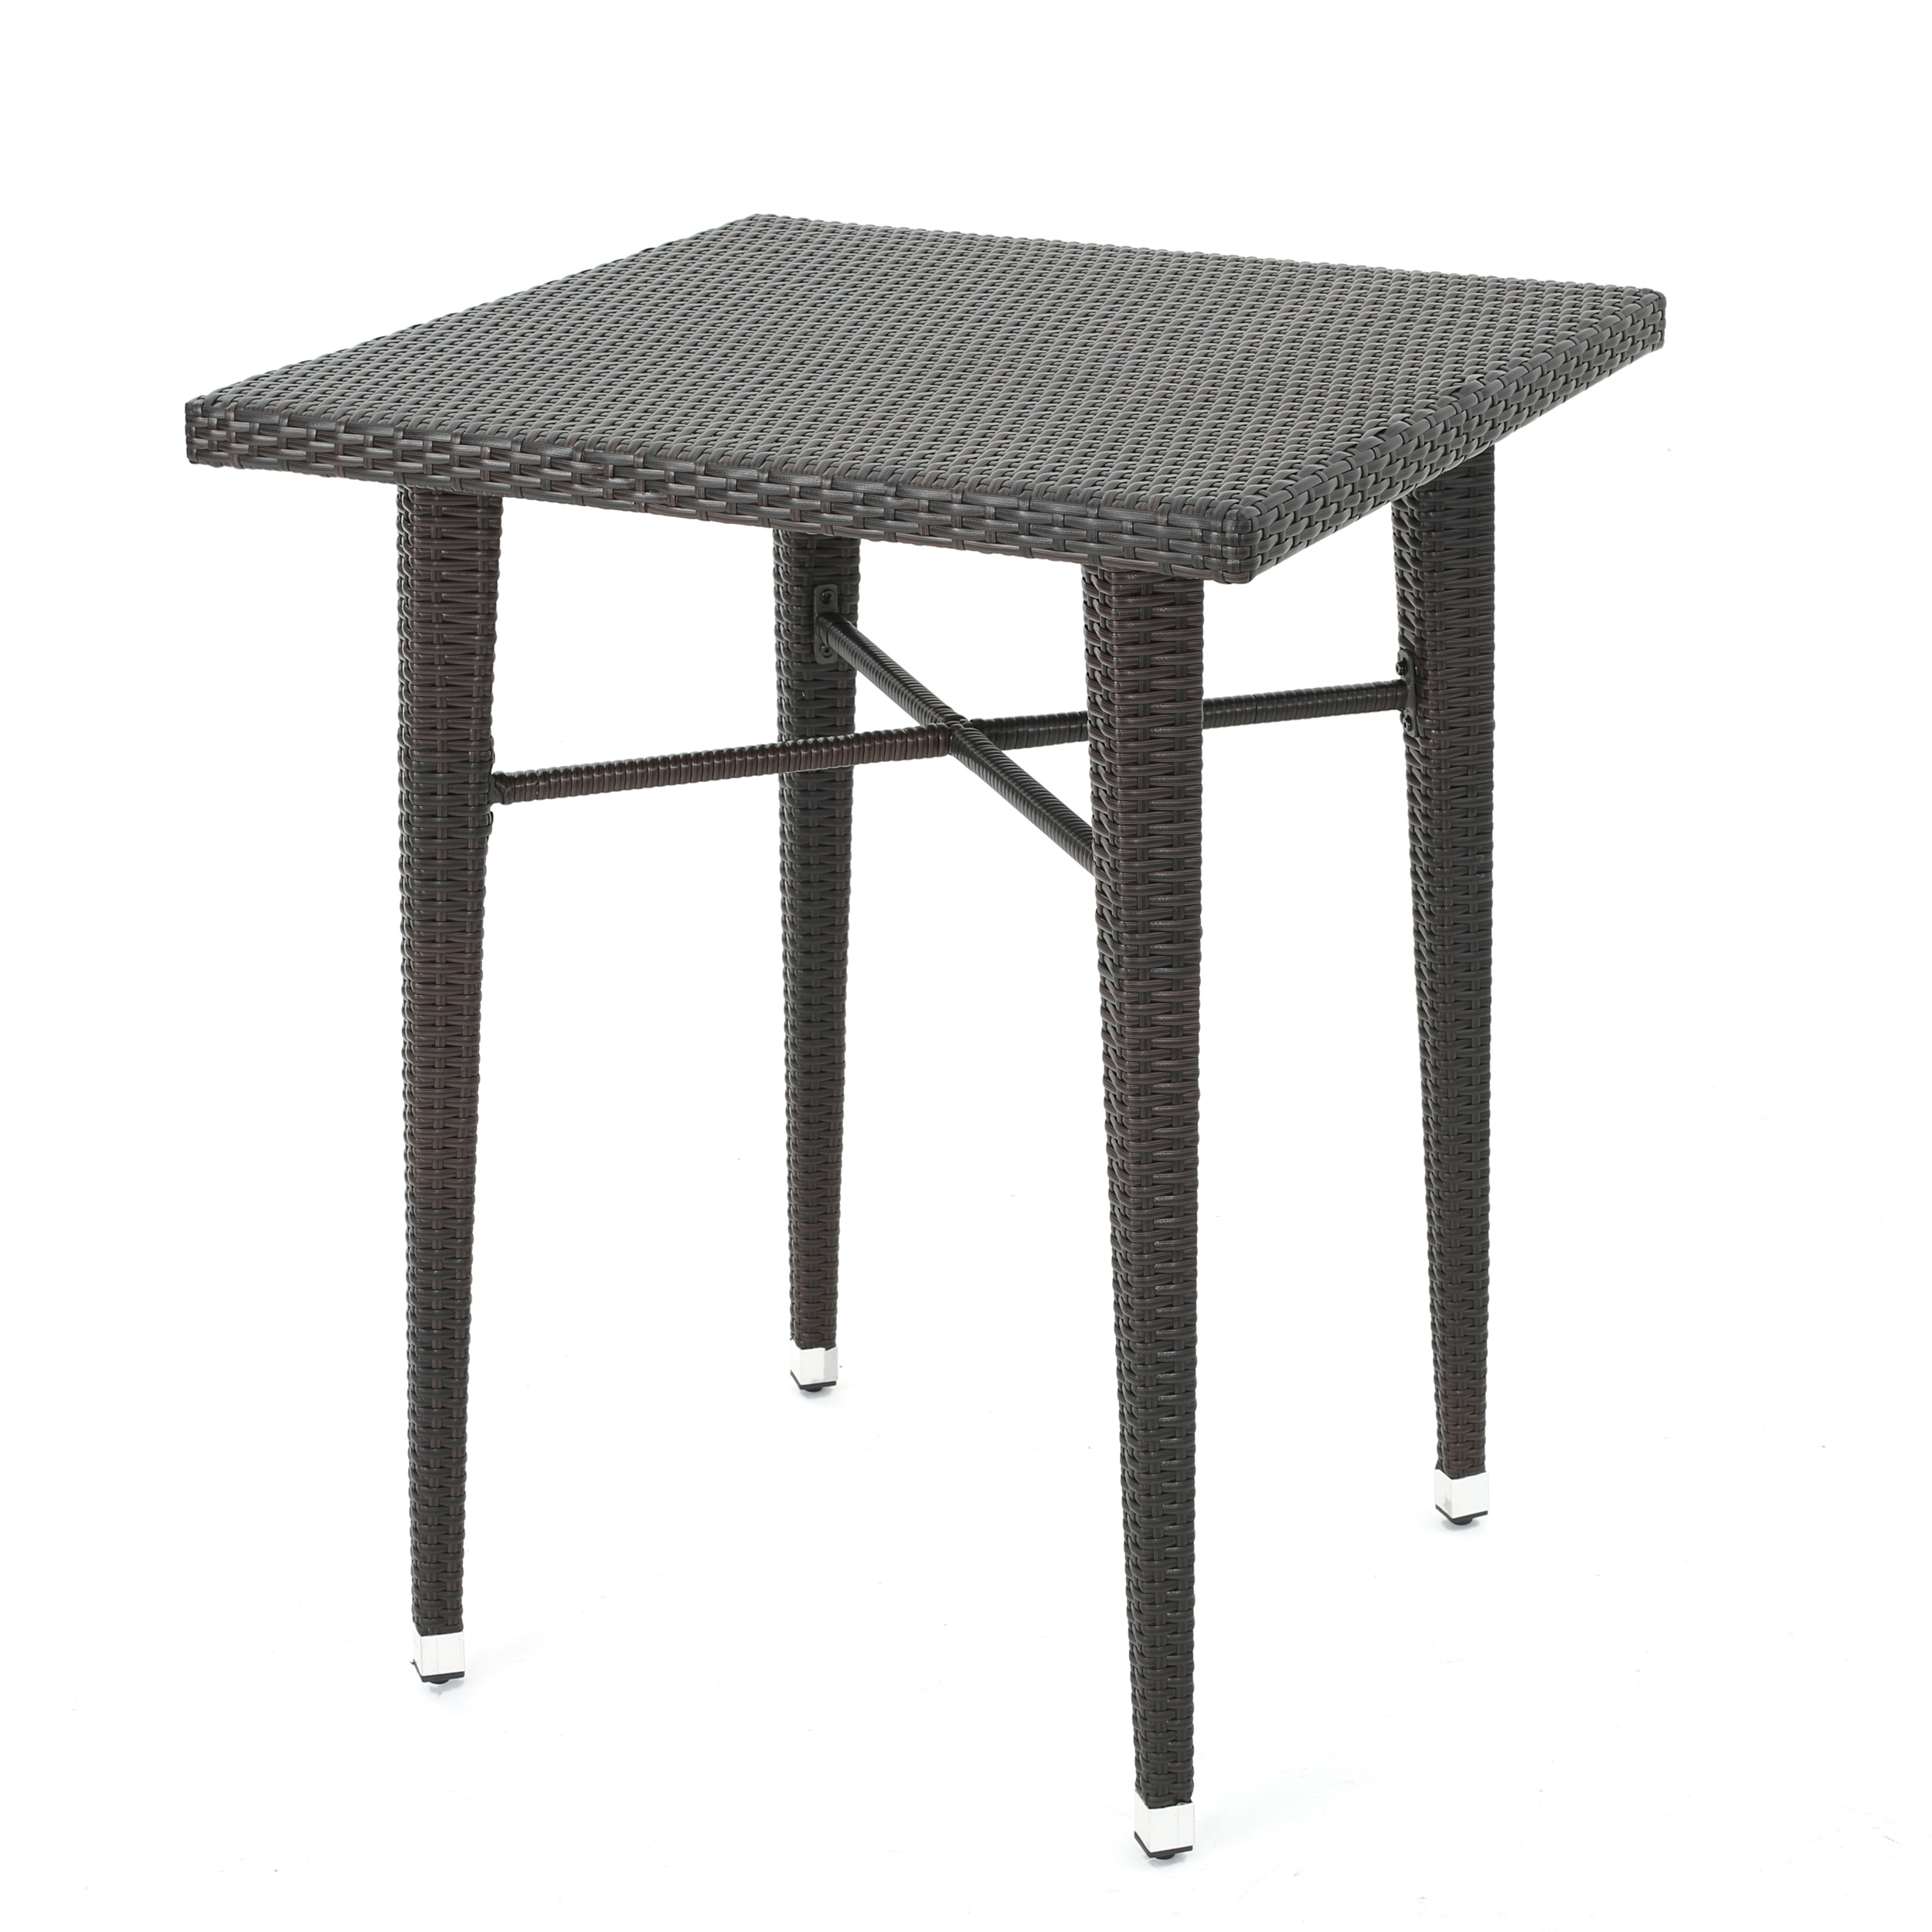 Dom Outdoor 32.5 Inch Square Wicker Bar Table, Multibrown